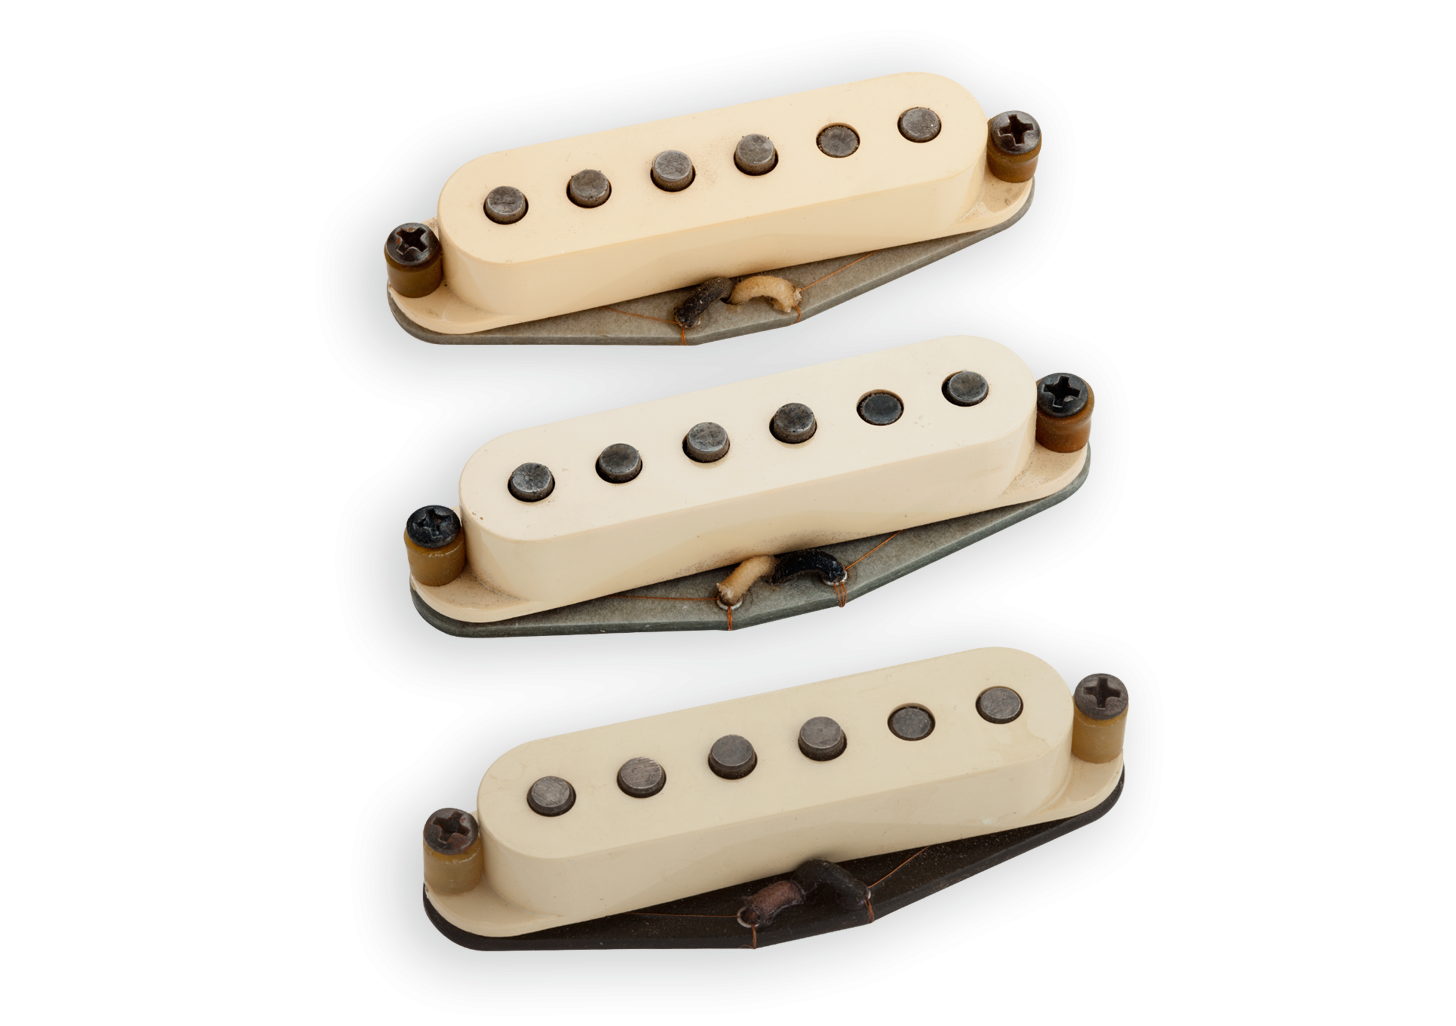 Seymour Duncan Antiquity II Surfer Strat - Set